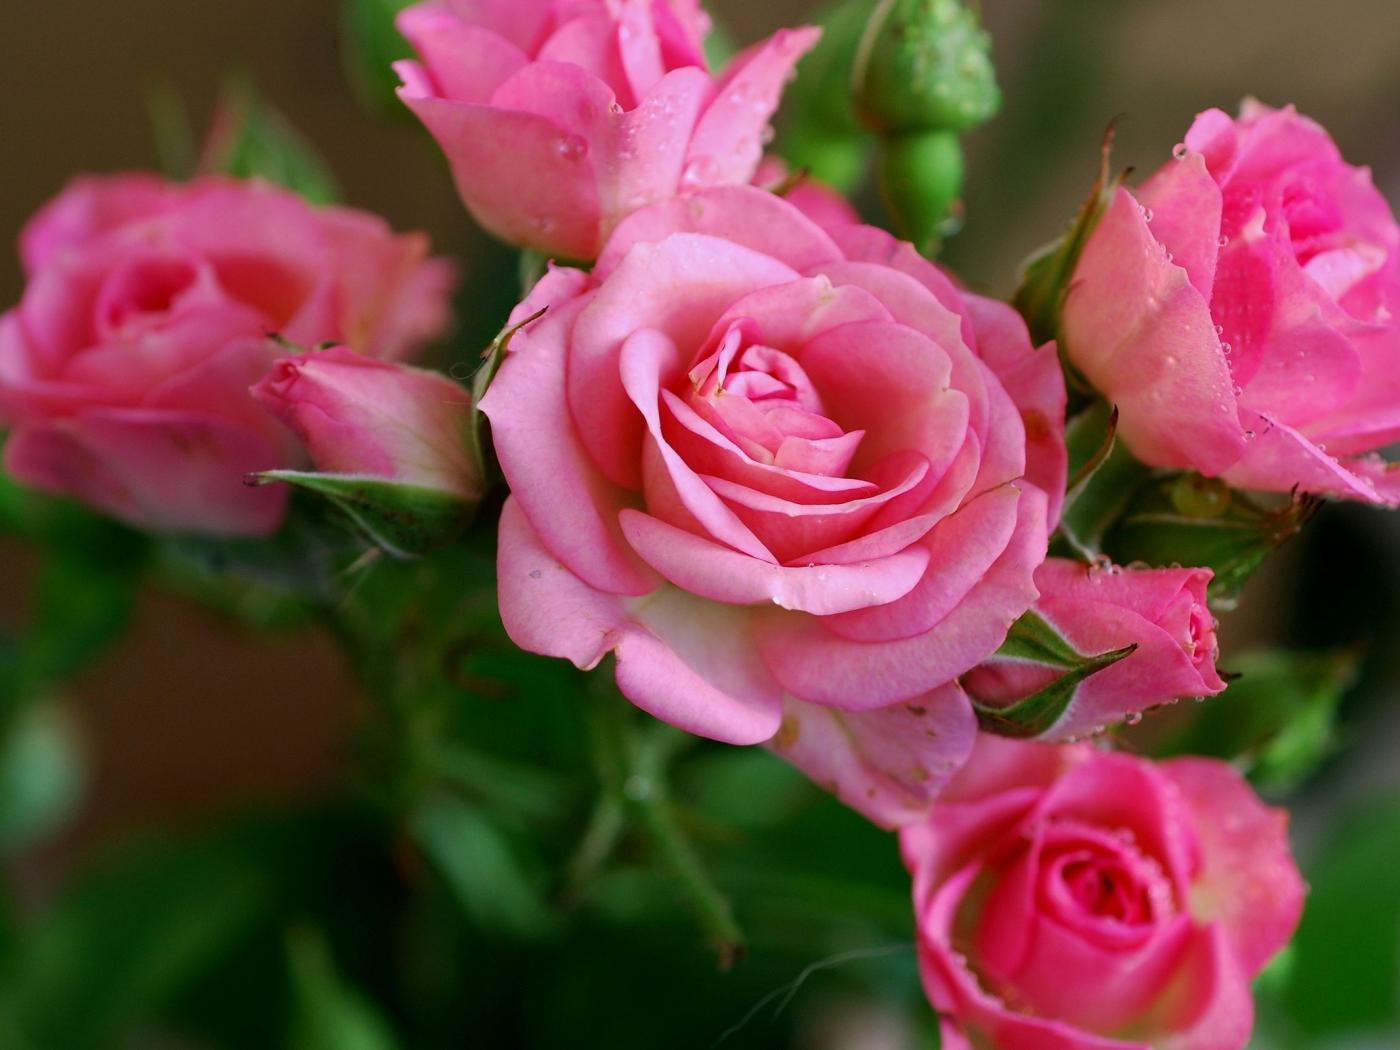 Nature Wallpaper With Pink Rose Flower